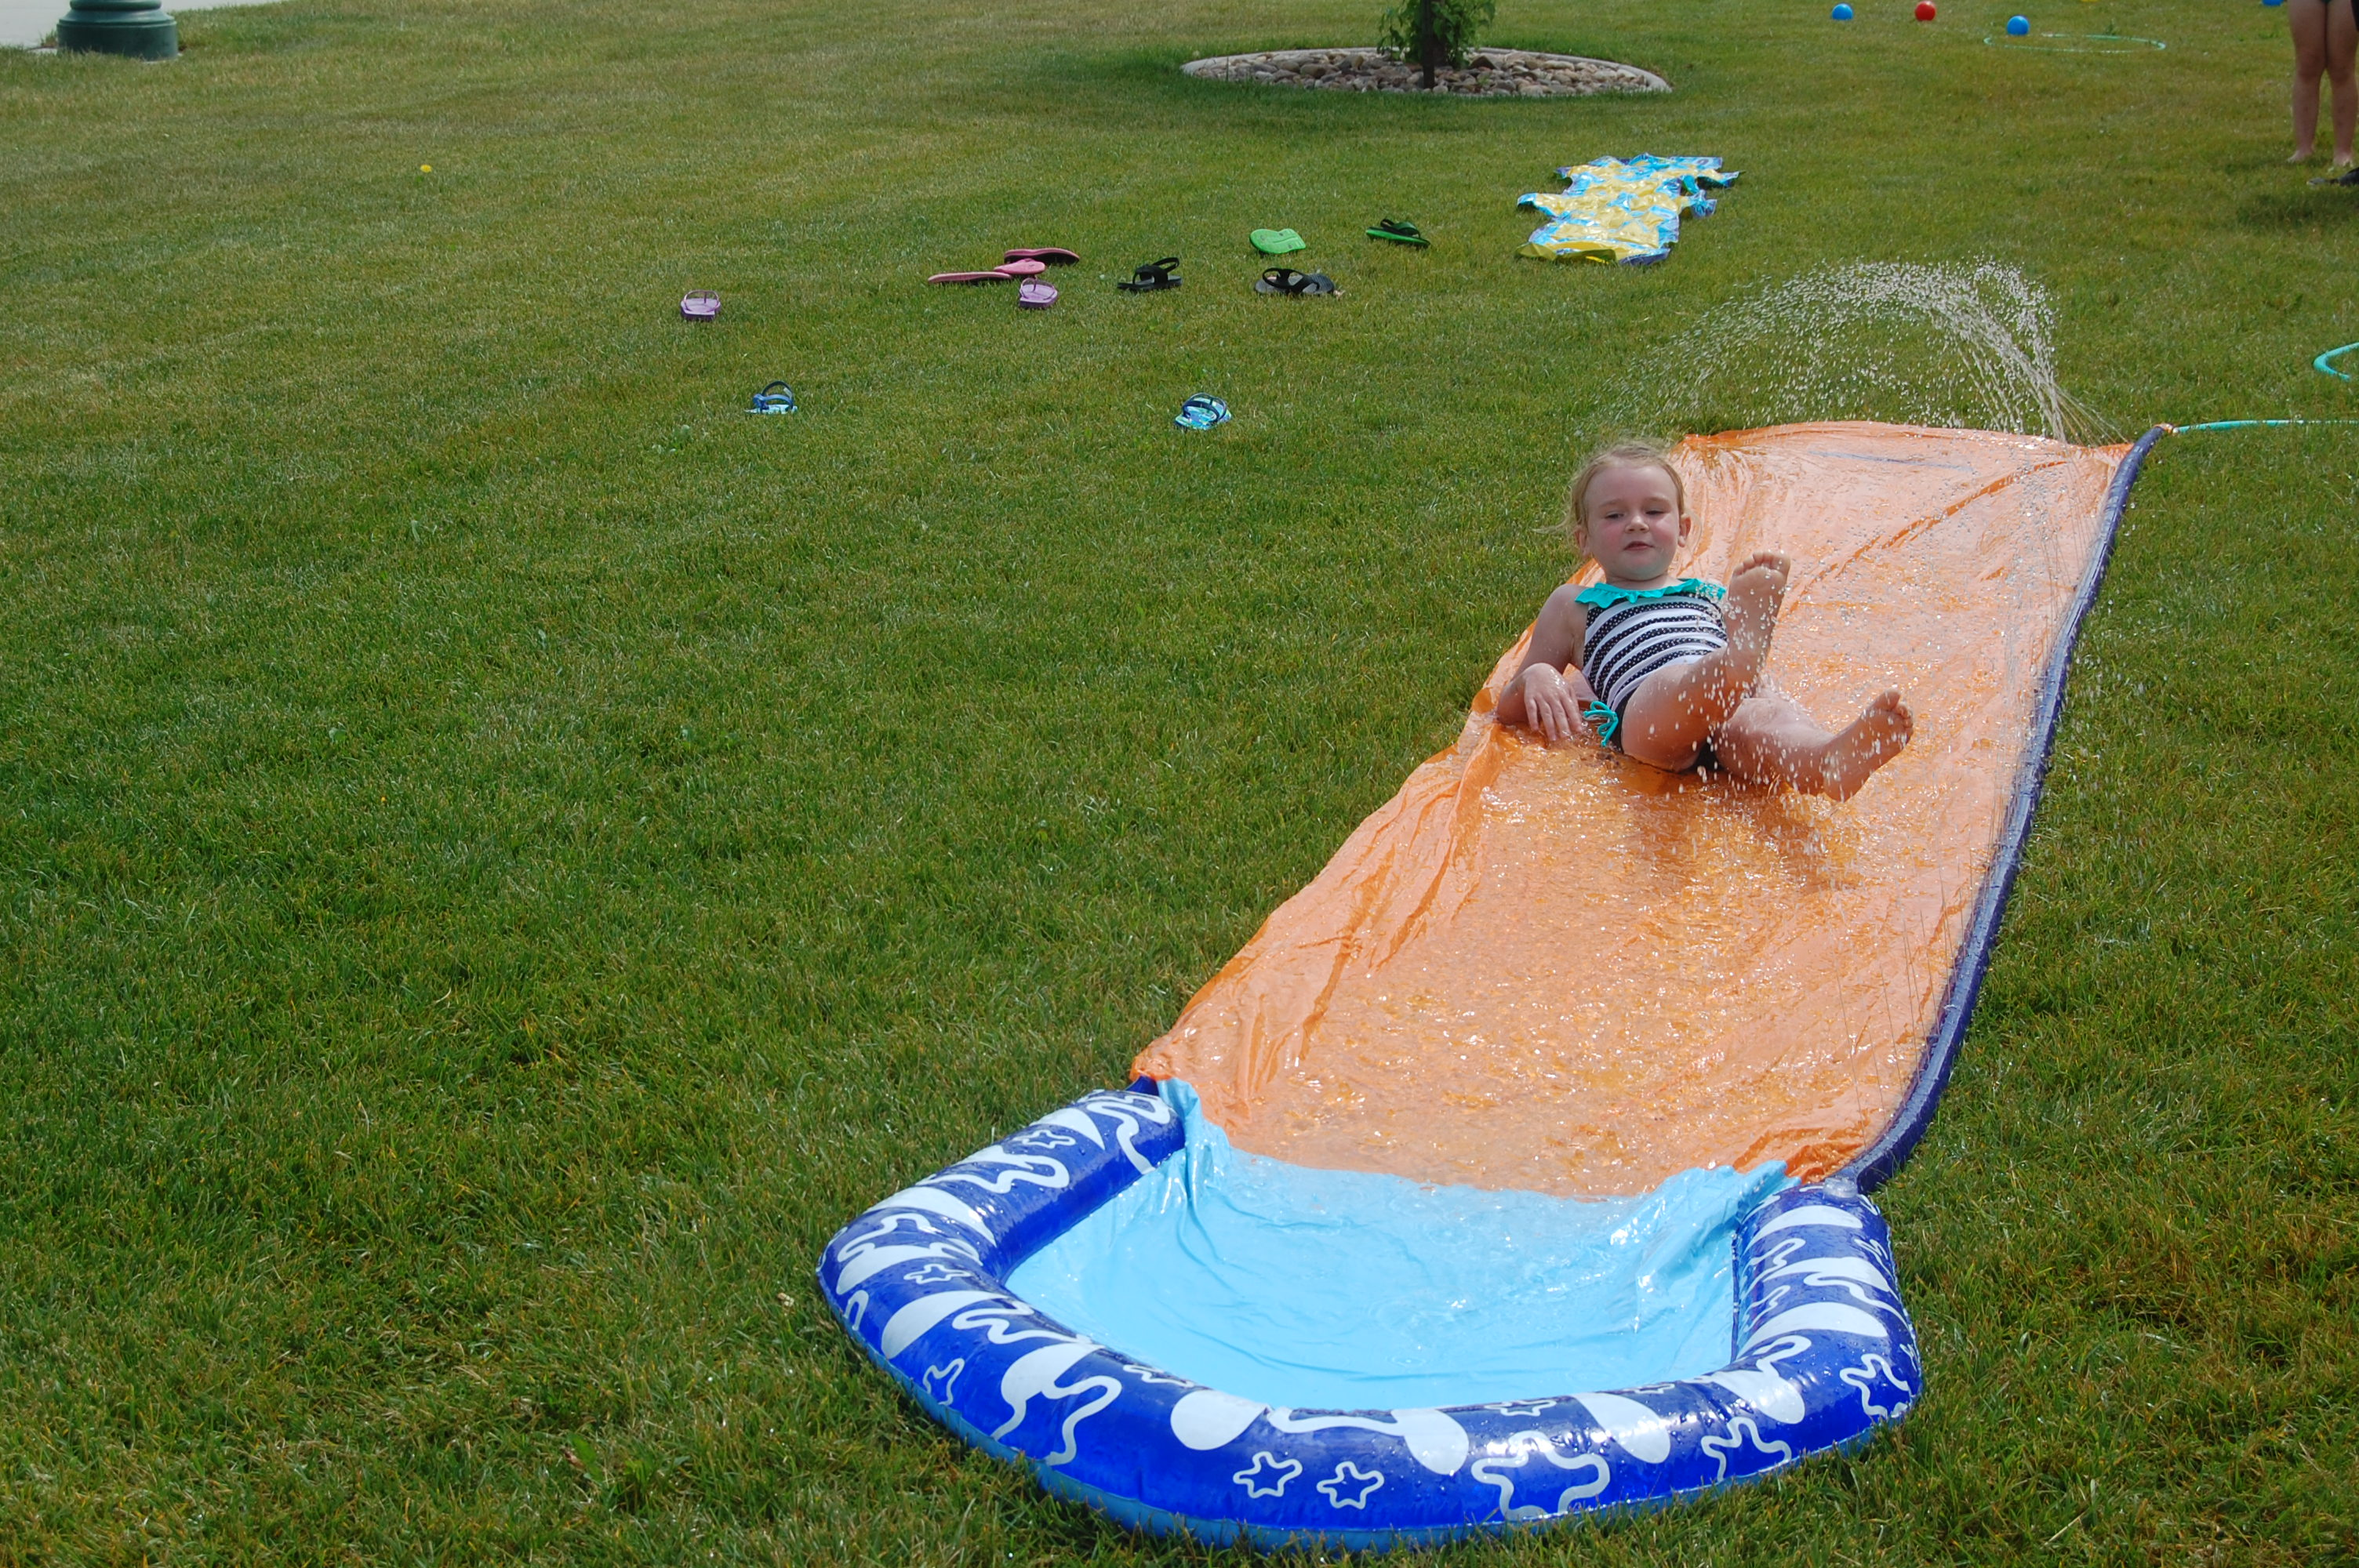 Devin on the slip n slide